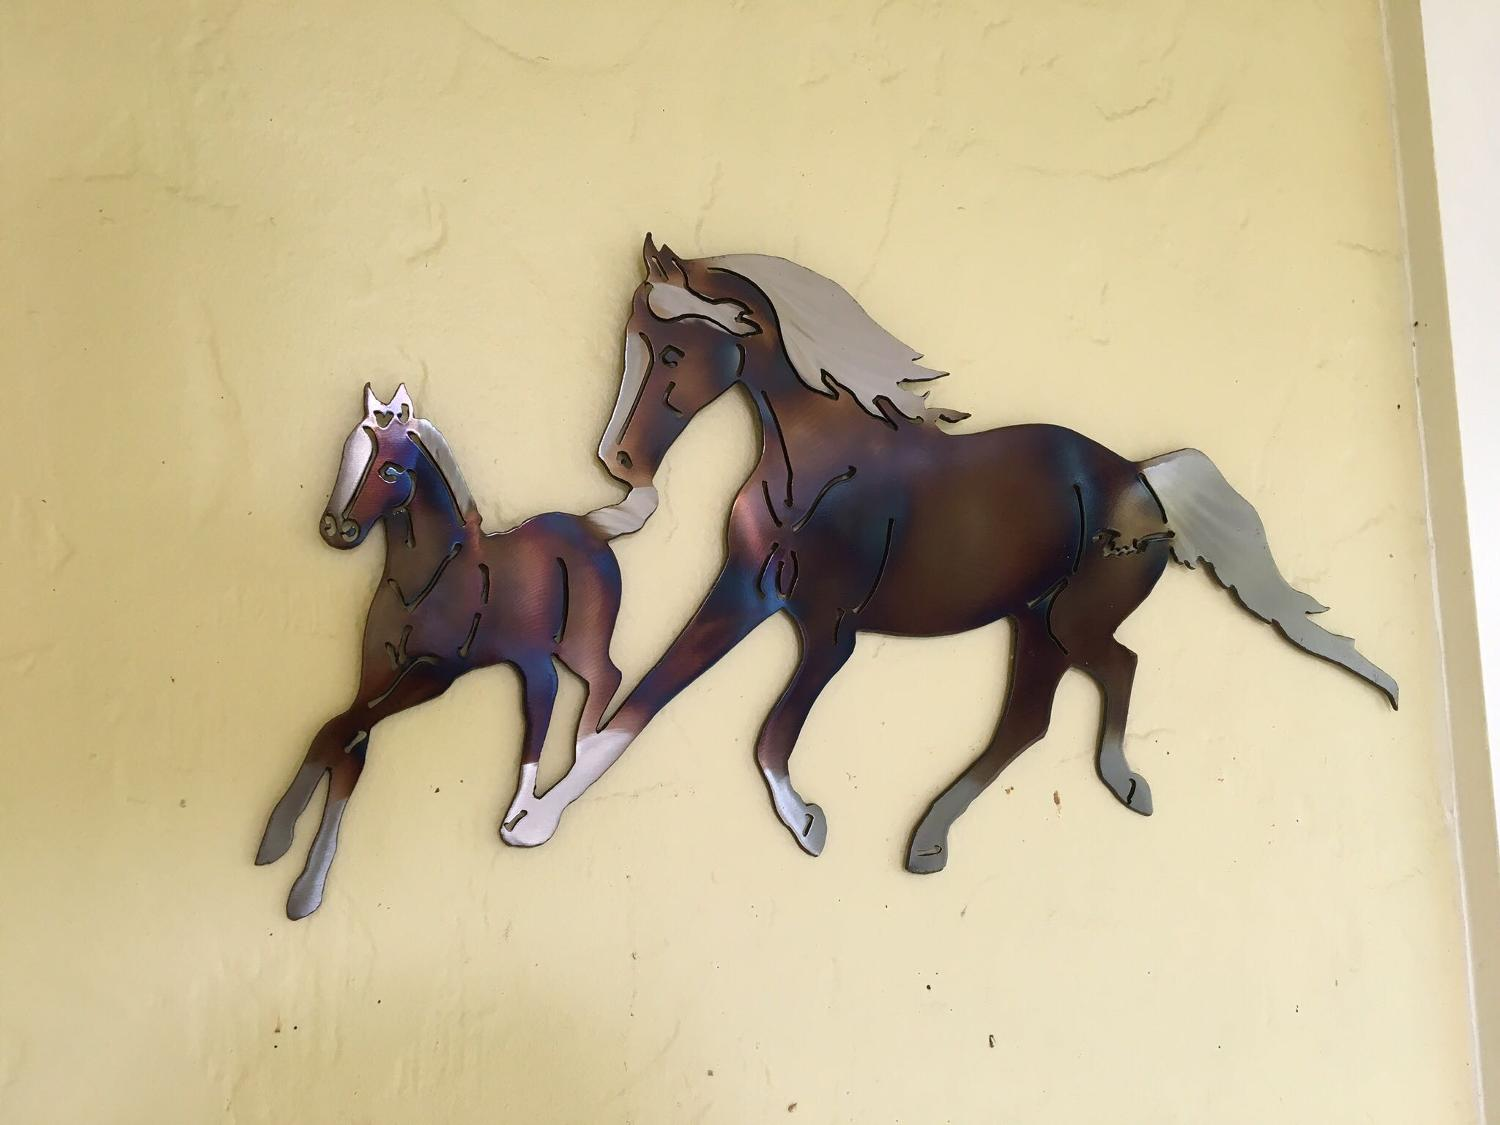 Best running free art by benedict metal artistry for for World decor auction san antonio